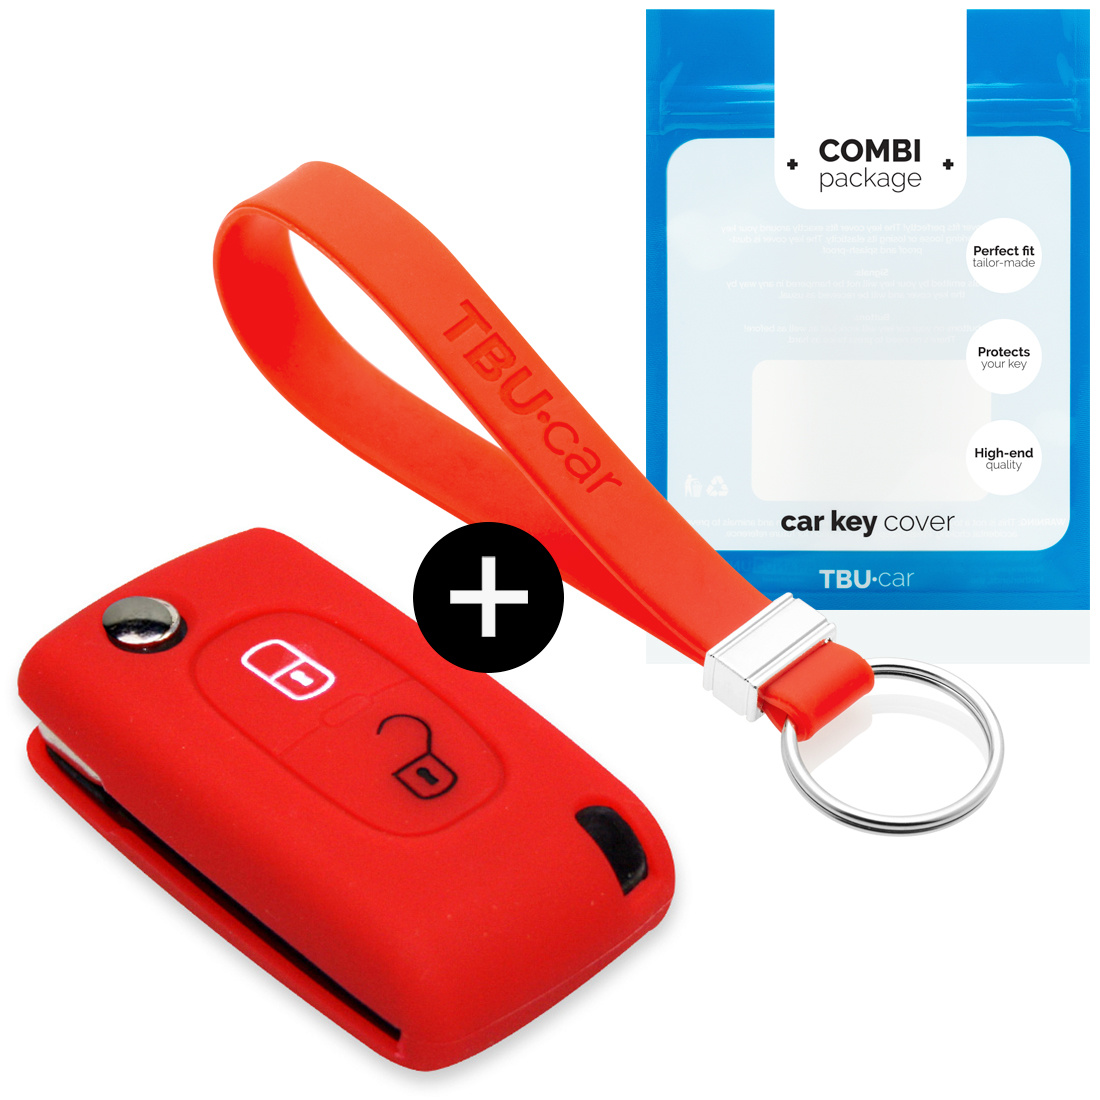 Peugeot Car key cover - Silicone Protective Remote Key Shell - FOB Case Cover - Red